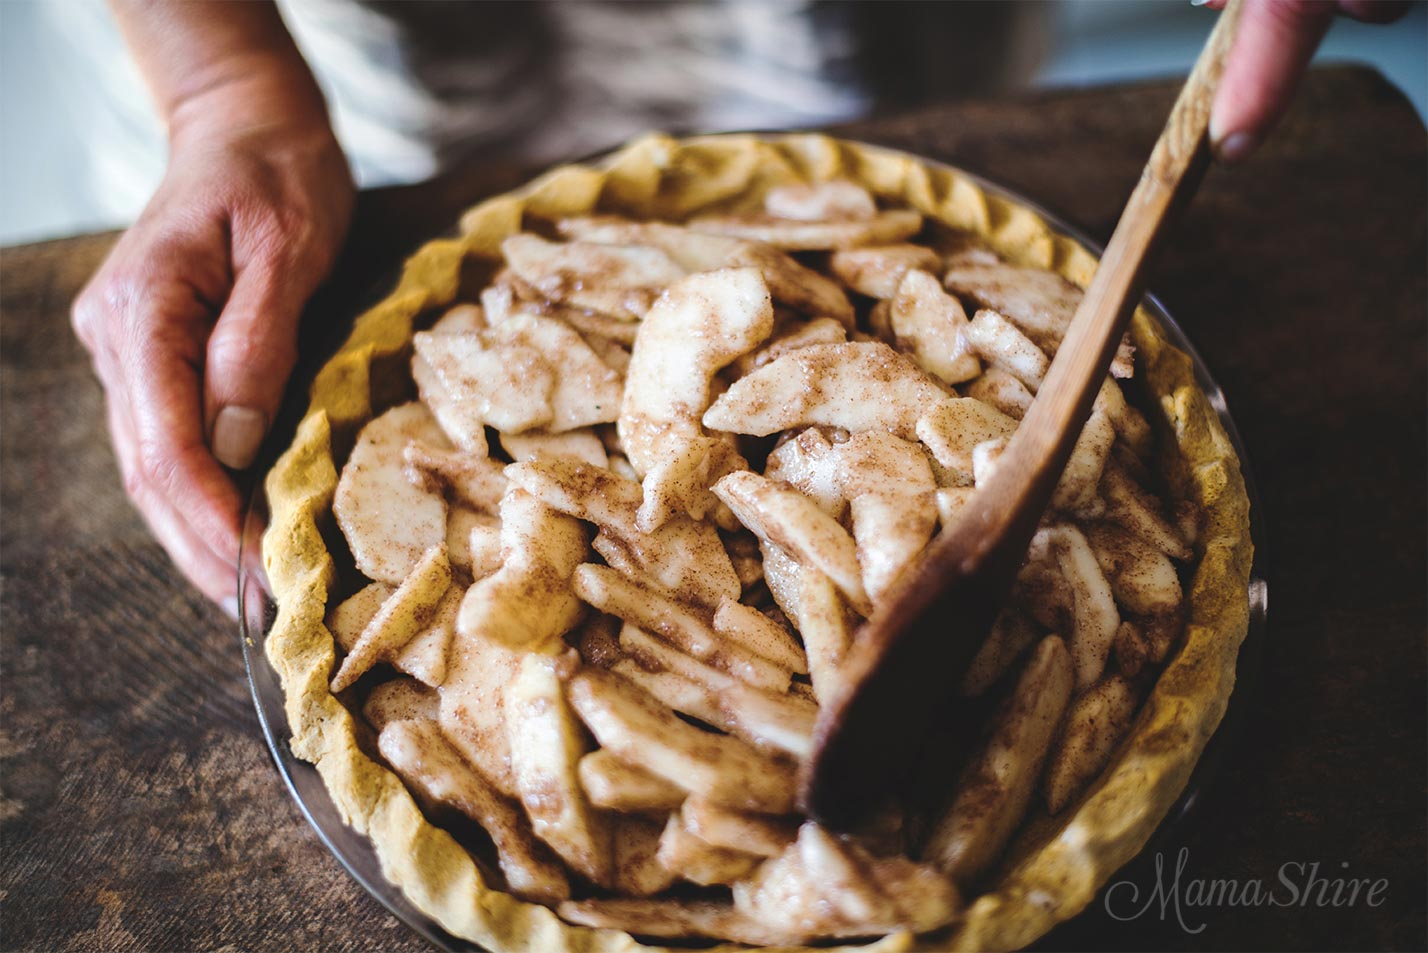 Gluten-Free Apple Pie Recipe - MamaShire